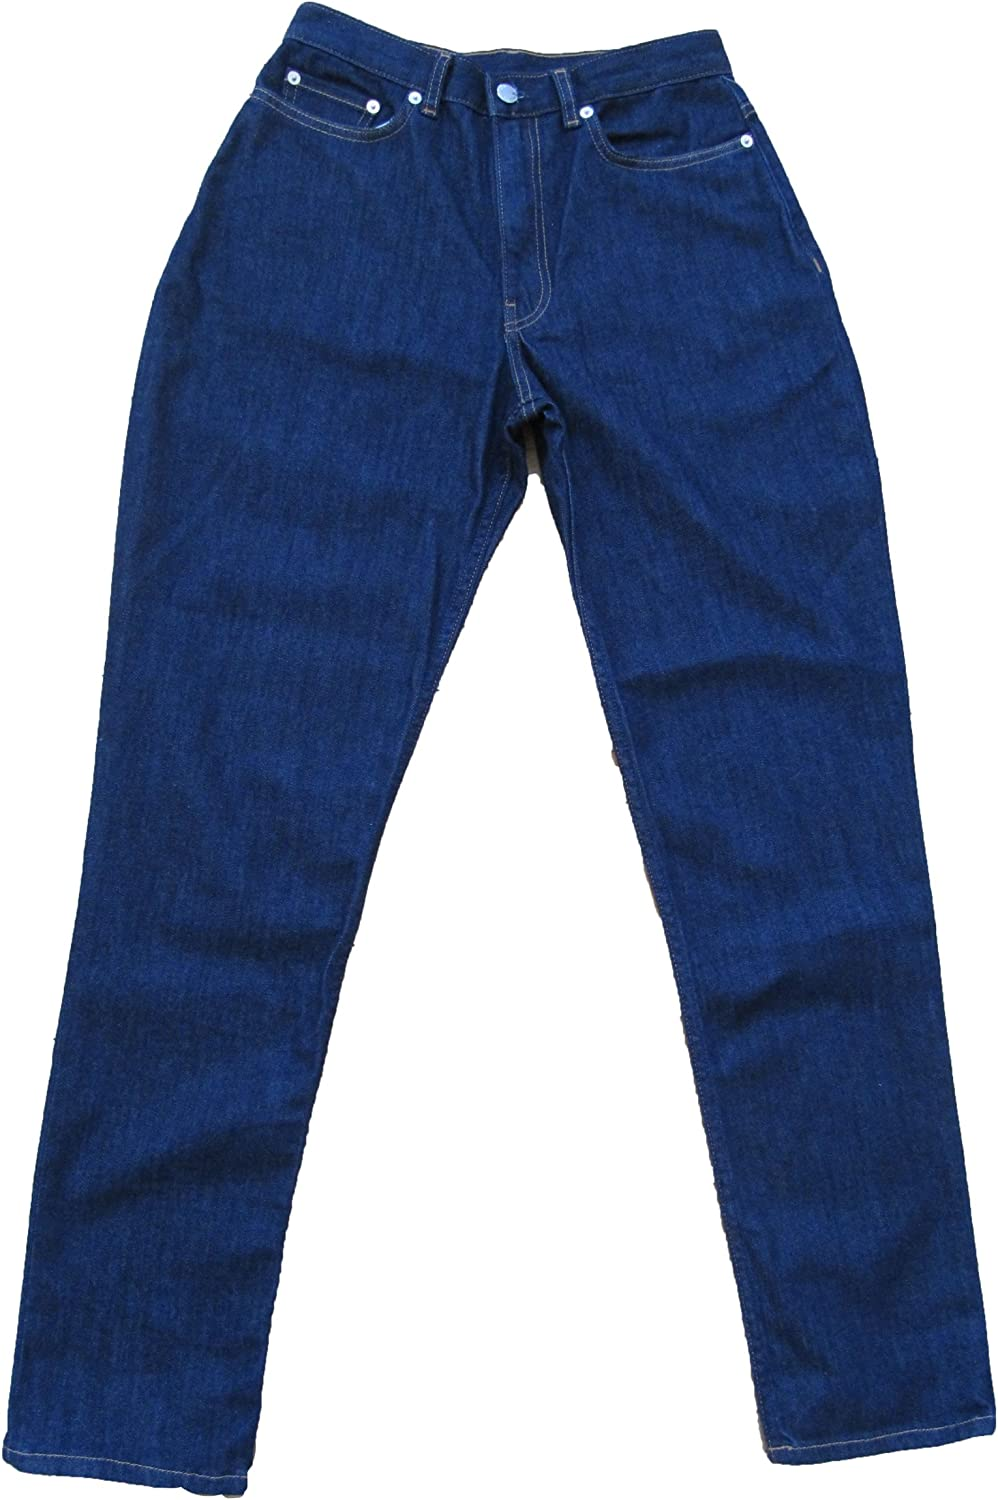 BLK DNM Jeans High Rise Womens Size 27 X 34 Crosby bluee